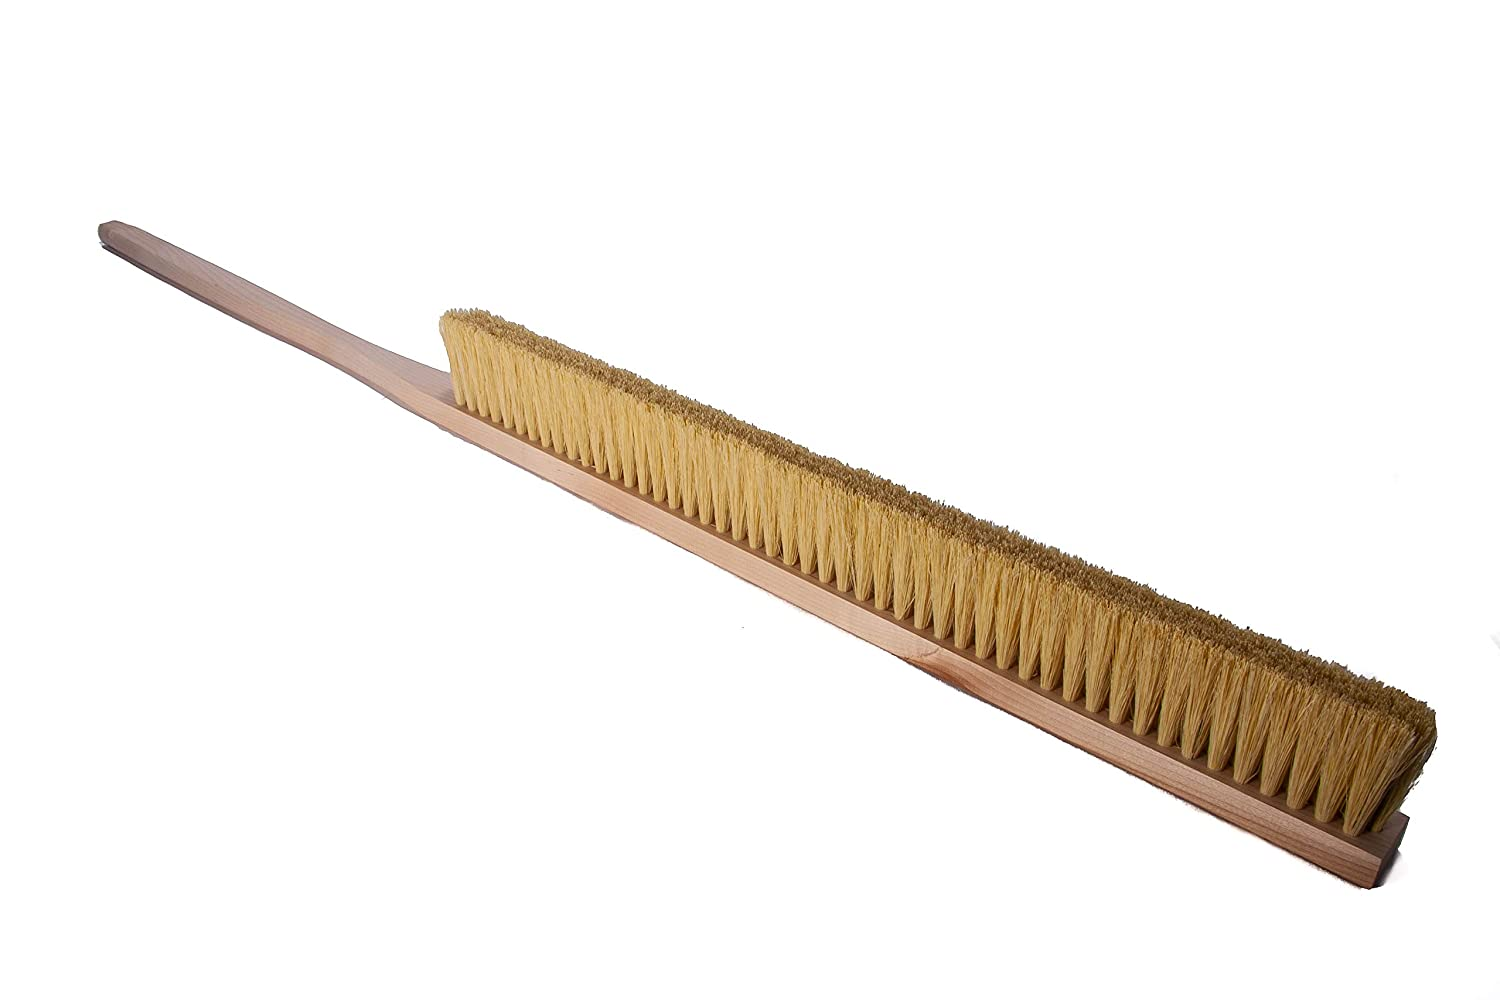 "Giant Revolving-Deck-Oven Brush, 51"" Long"